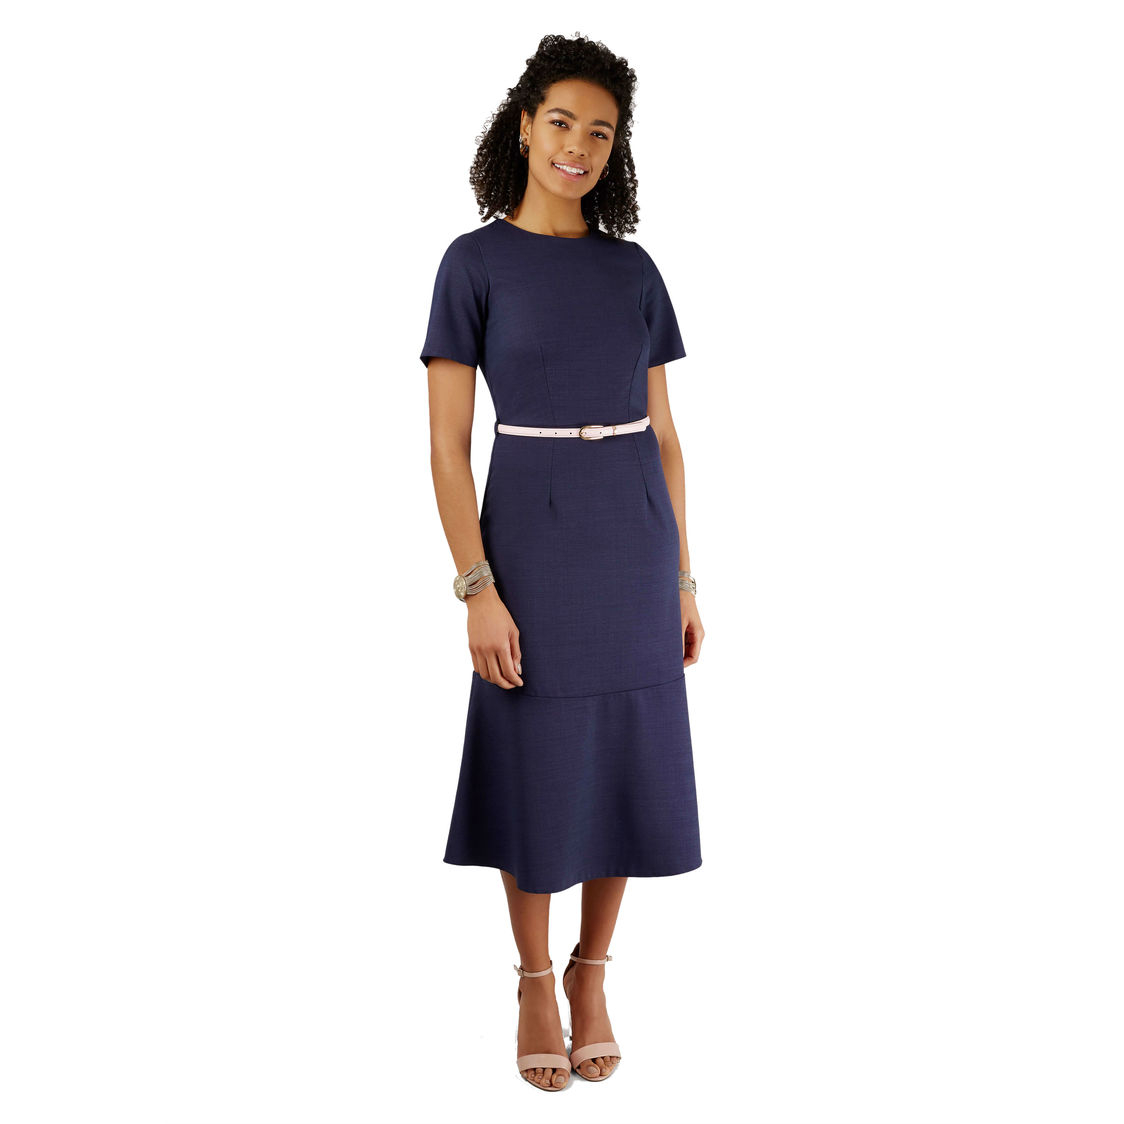 Navy Short Sleeve Midi Dress